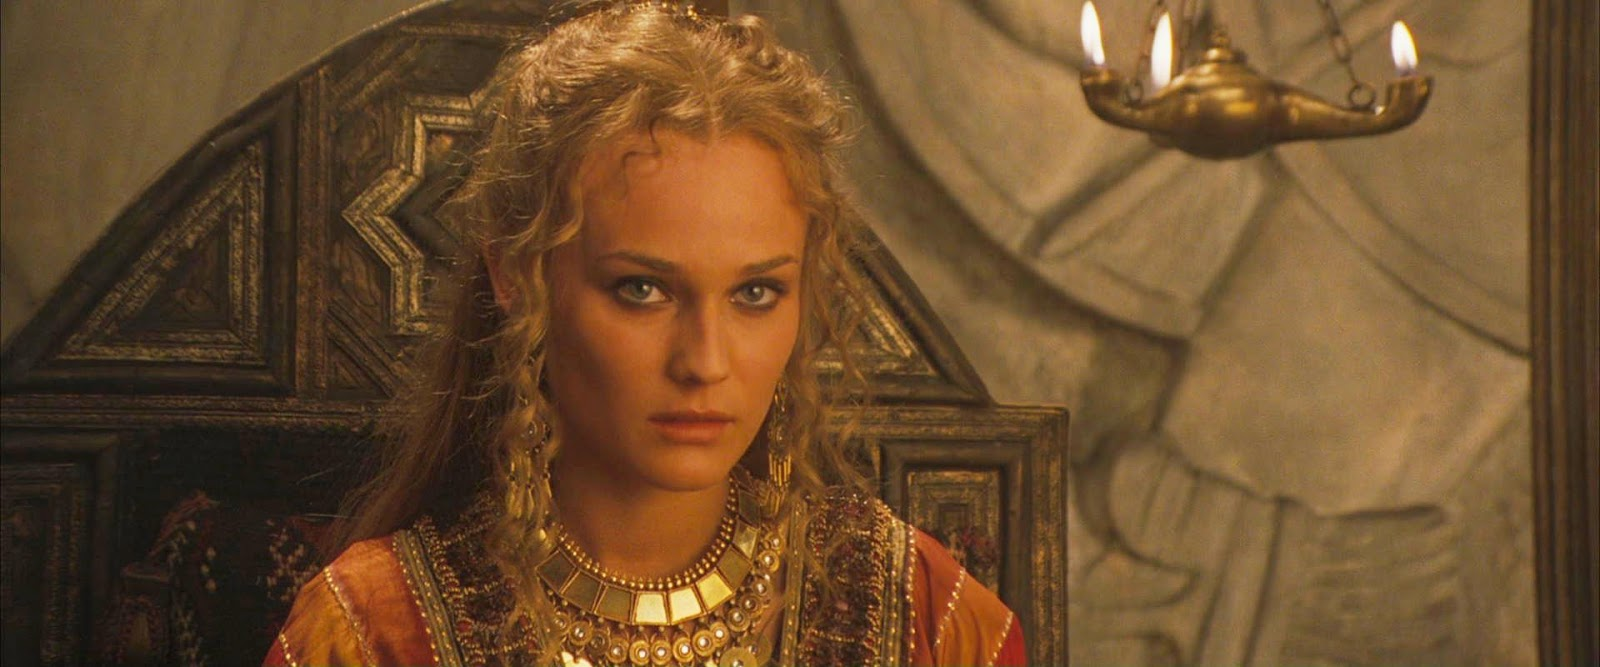 Movie and TV Cast Screencaps: Diane Kruger as Helen / Troy ...